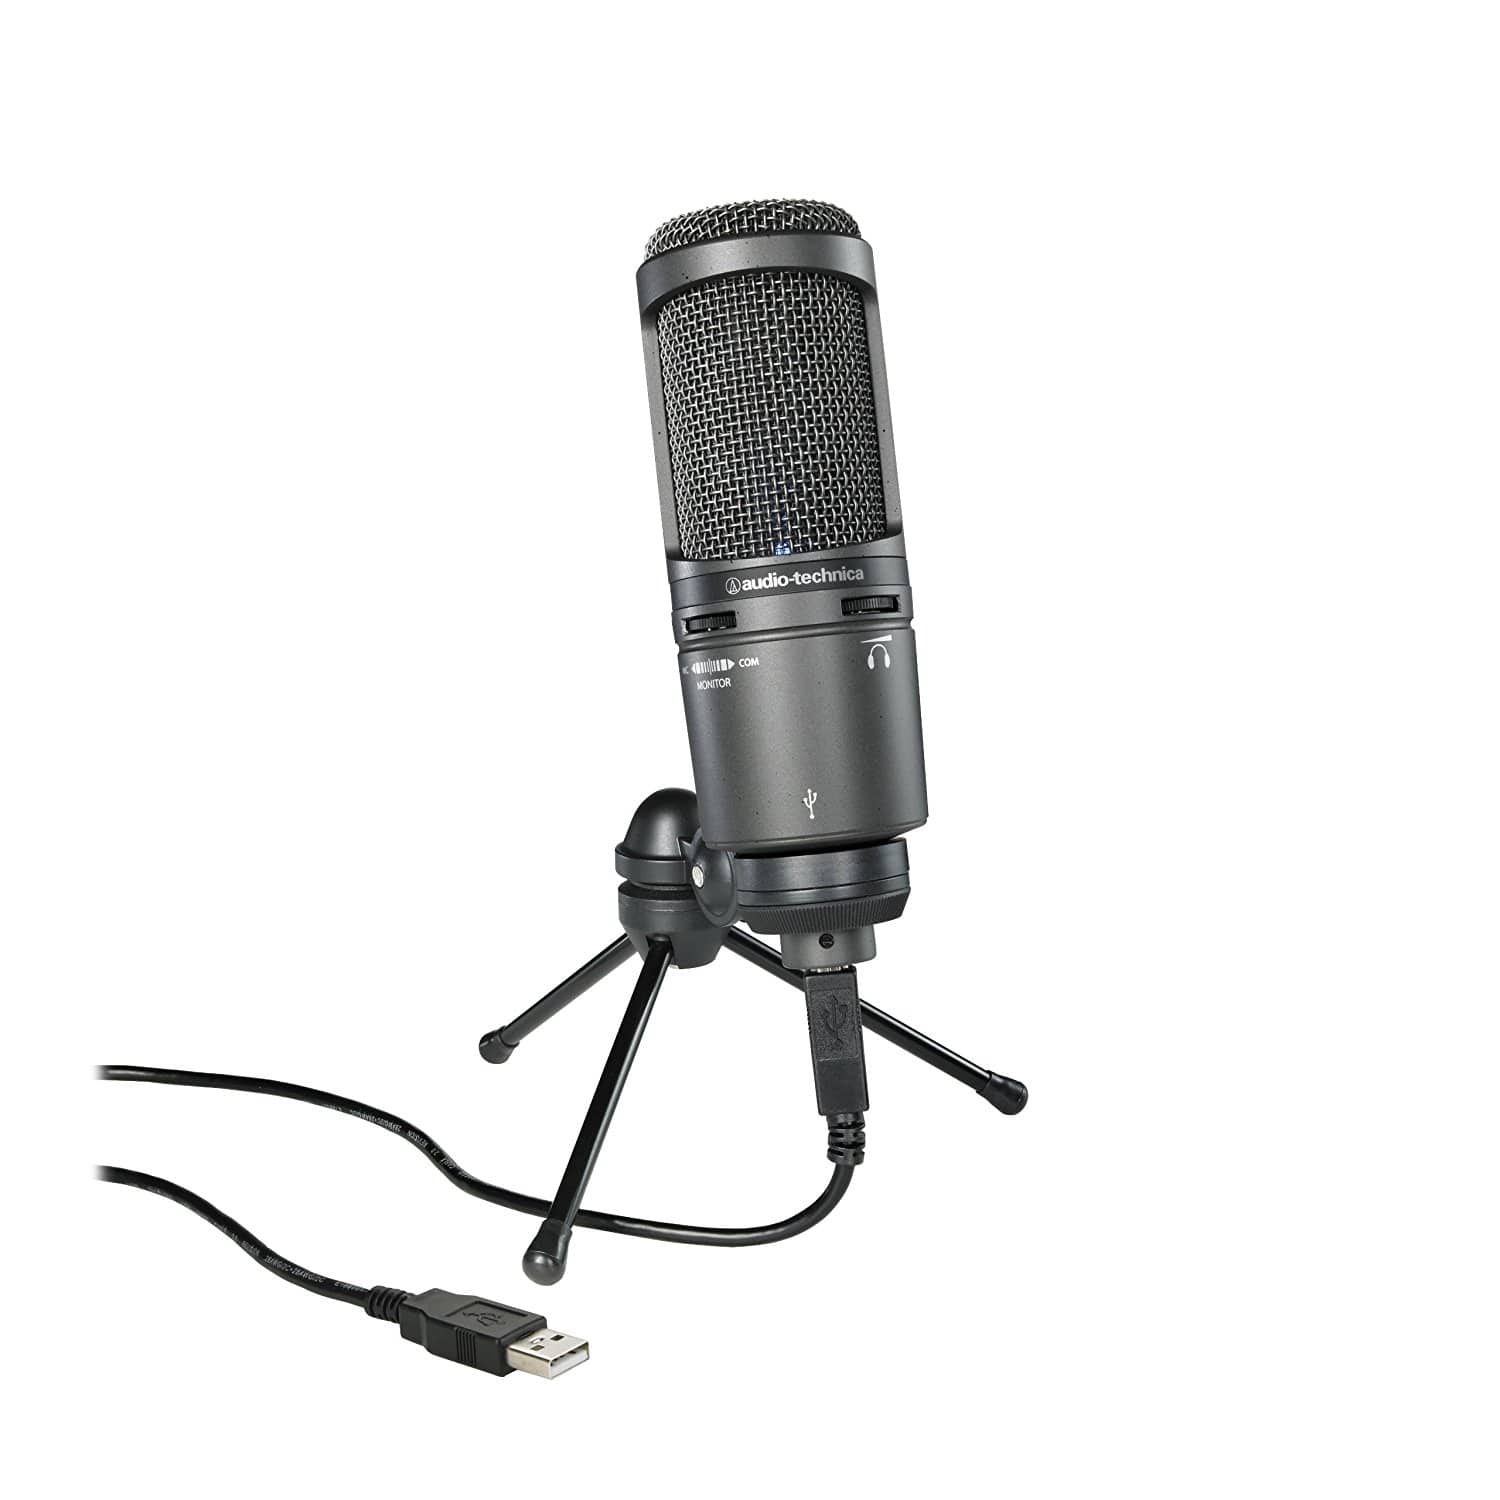 Audio-Technica AT2020USB+ Cardioid Condenser USB Microphone $74.99 + free shipping